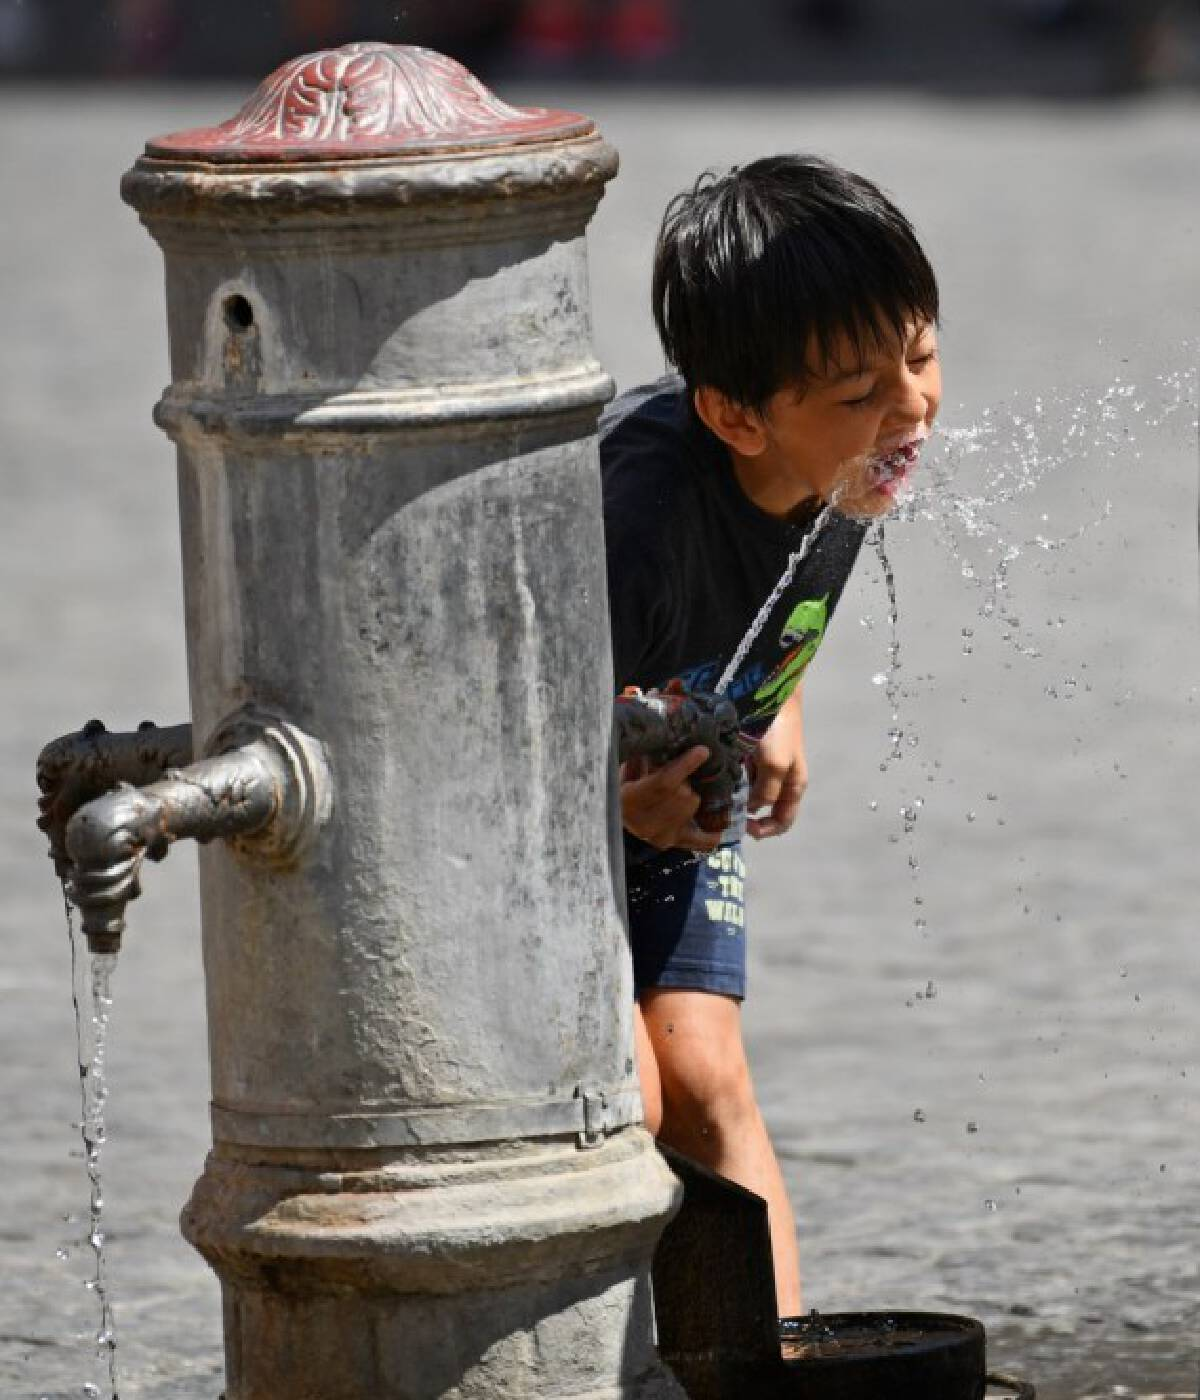 A boy refreshes himself with the tap water in Rome, Italy, Aug. 12, 2021.